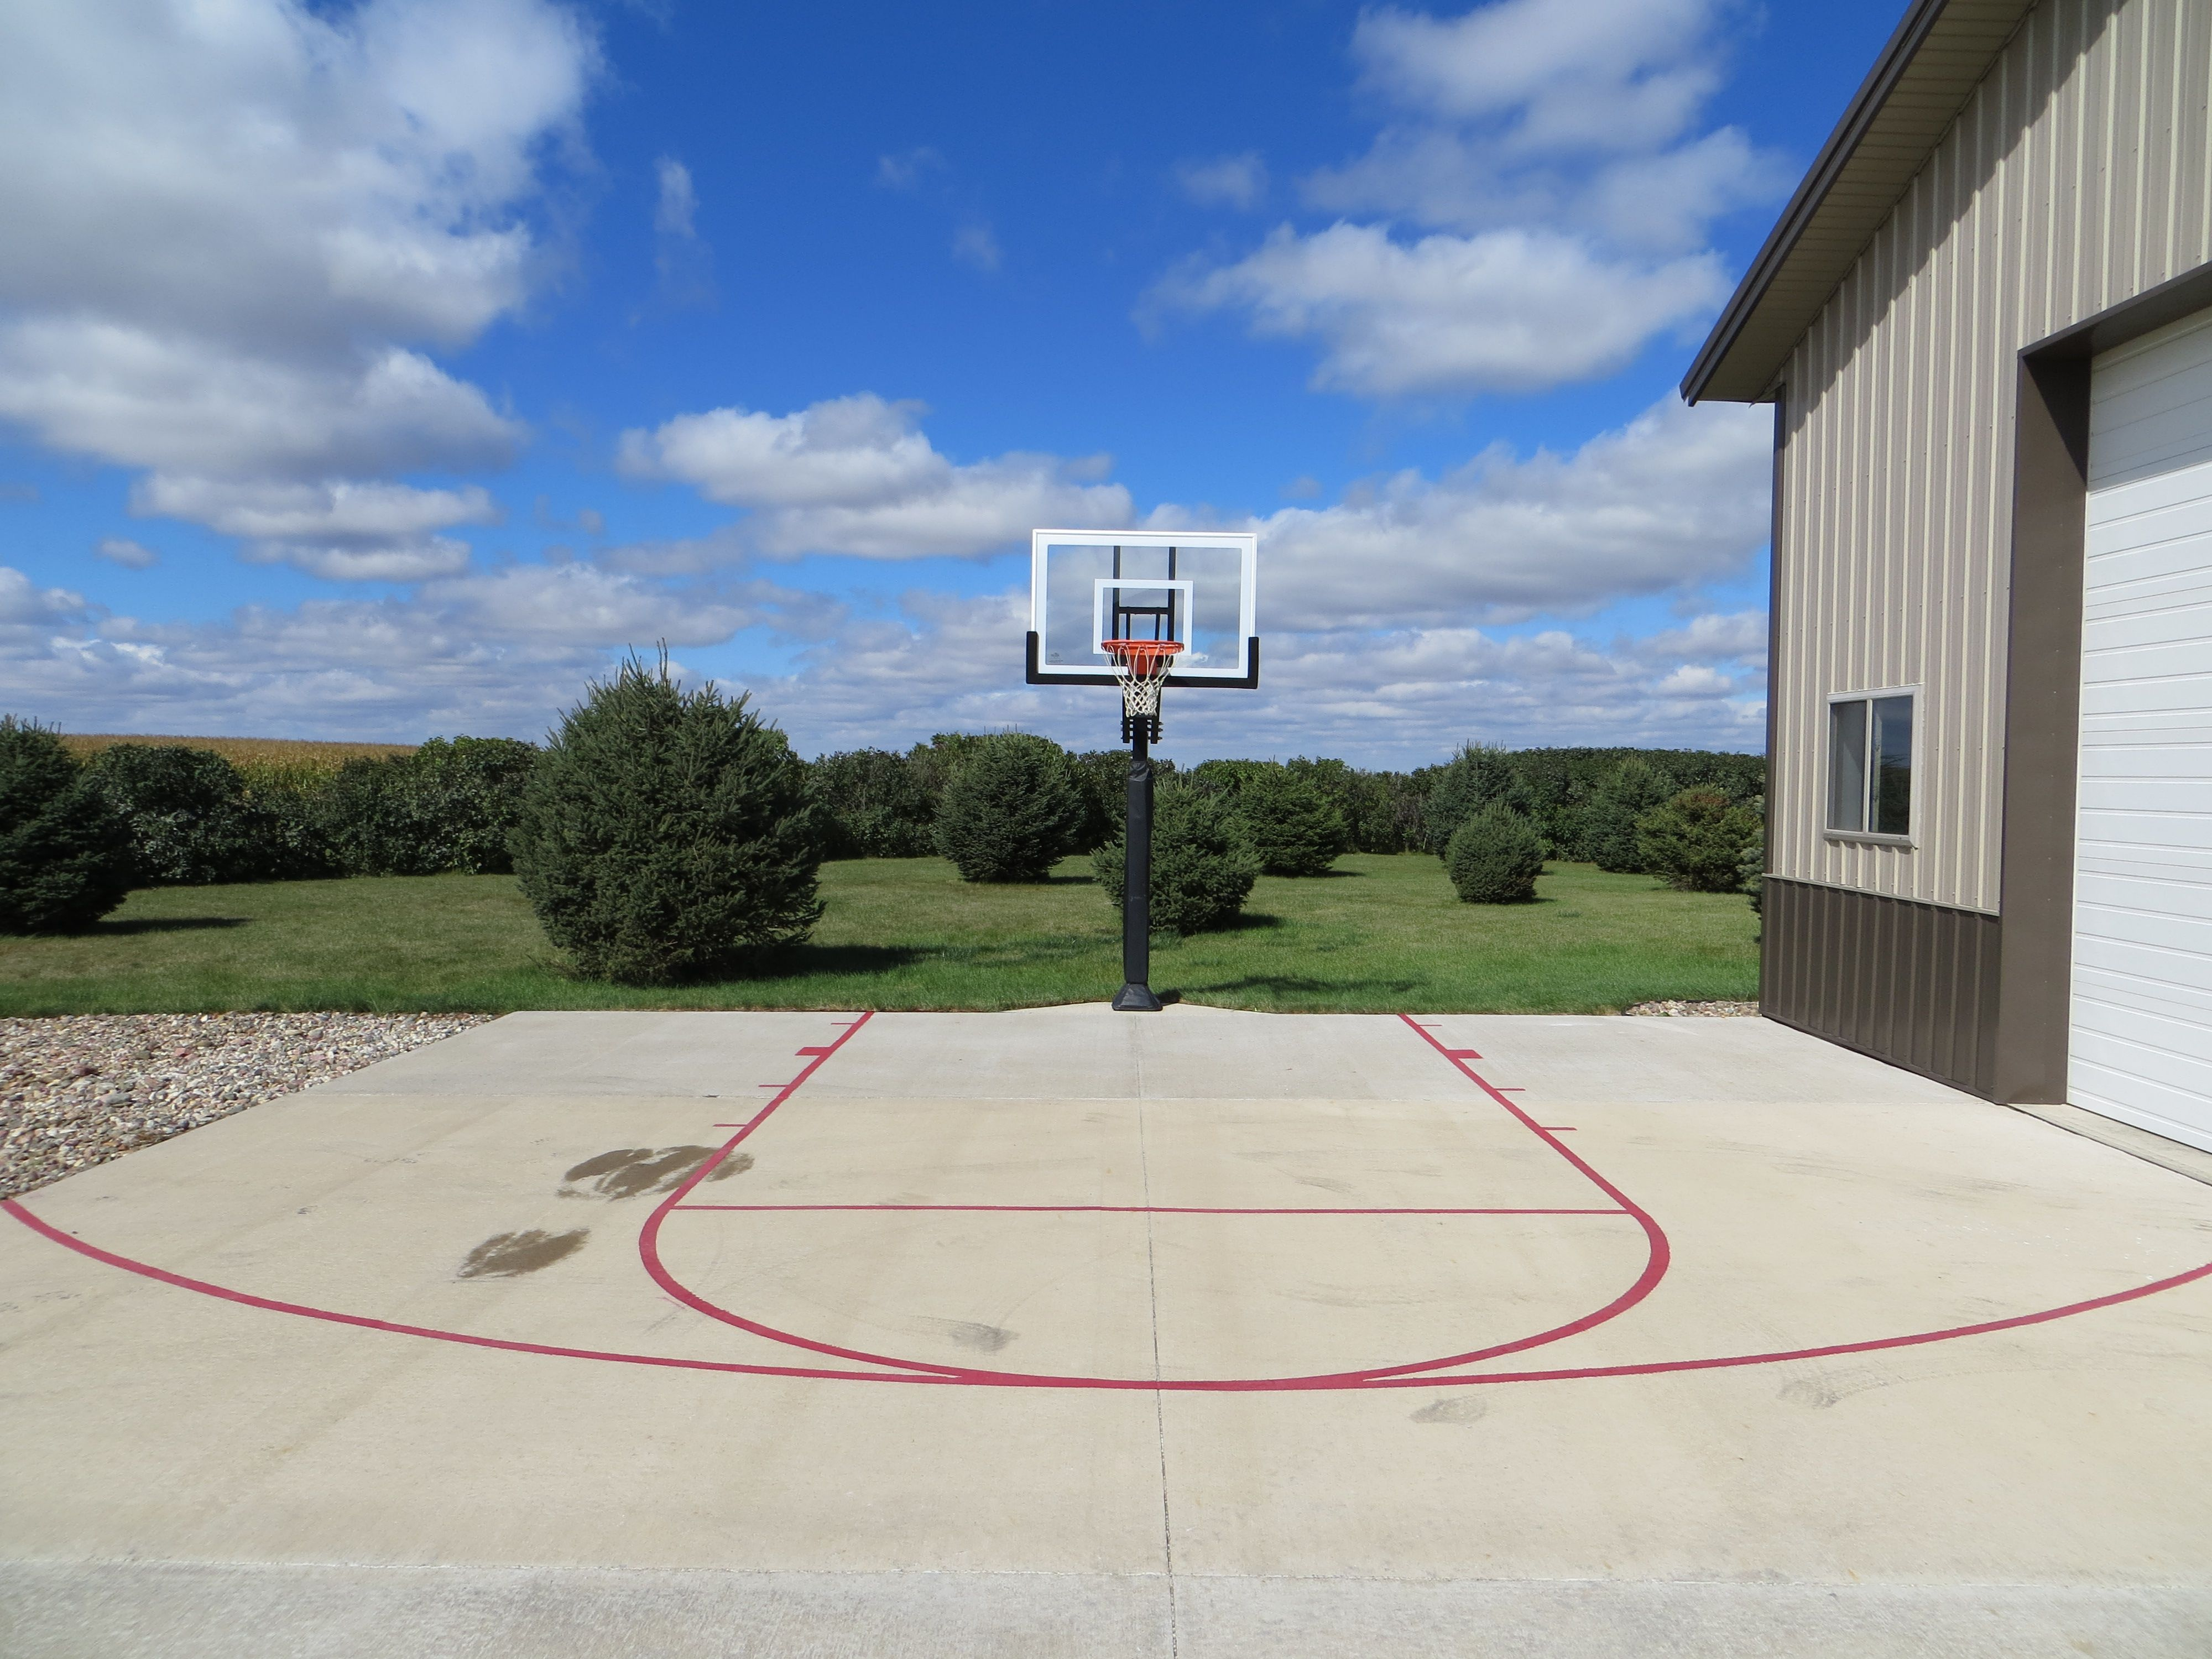 the pro dunk hoop wider height adjust ability over the competition